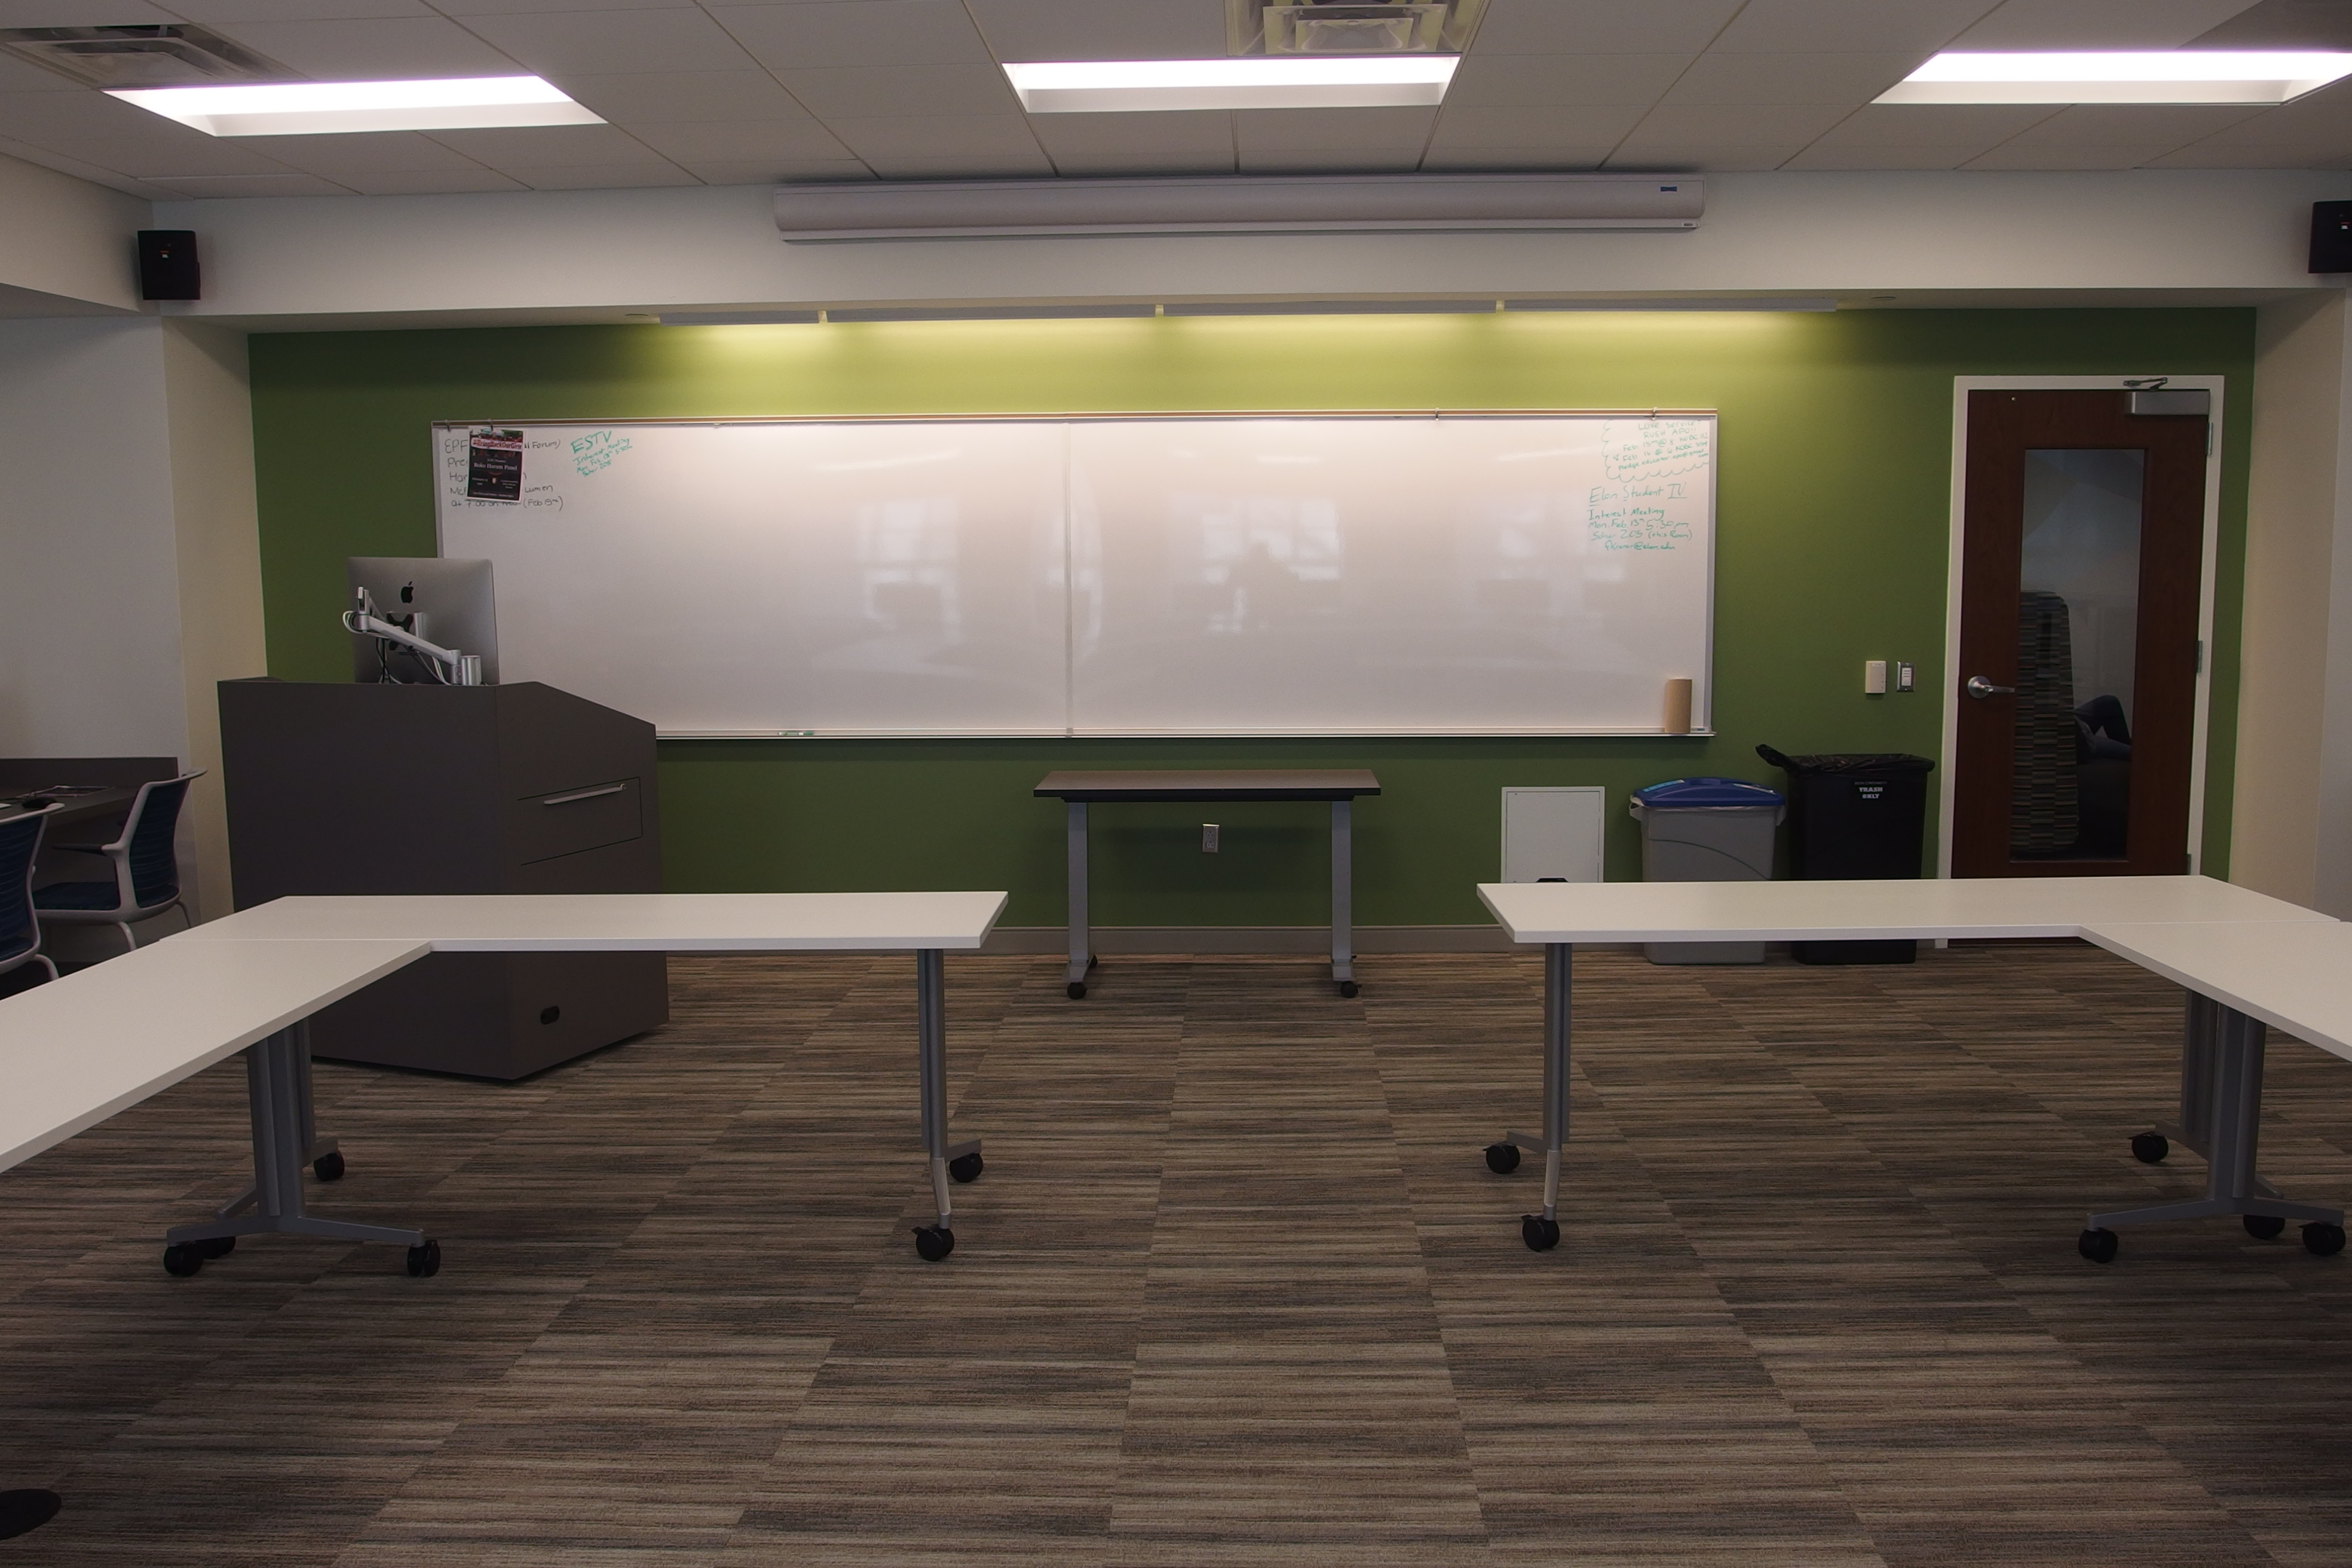 A photo of the front of the room.